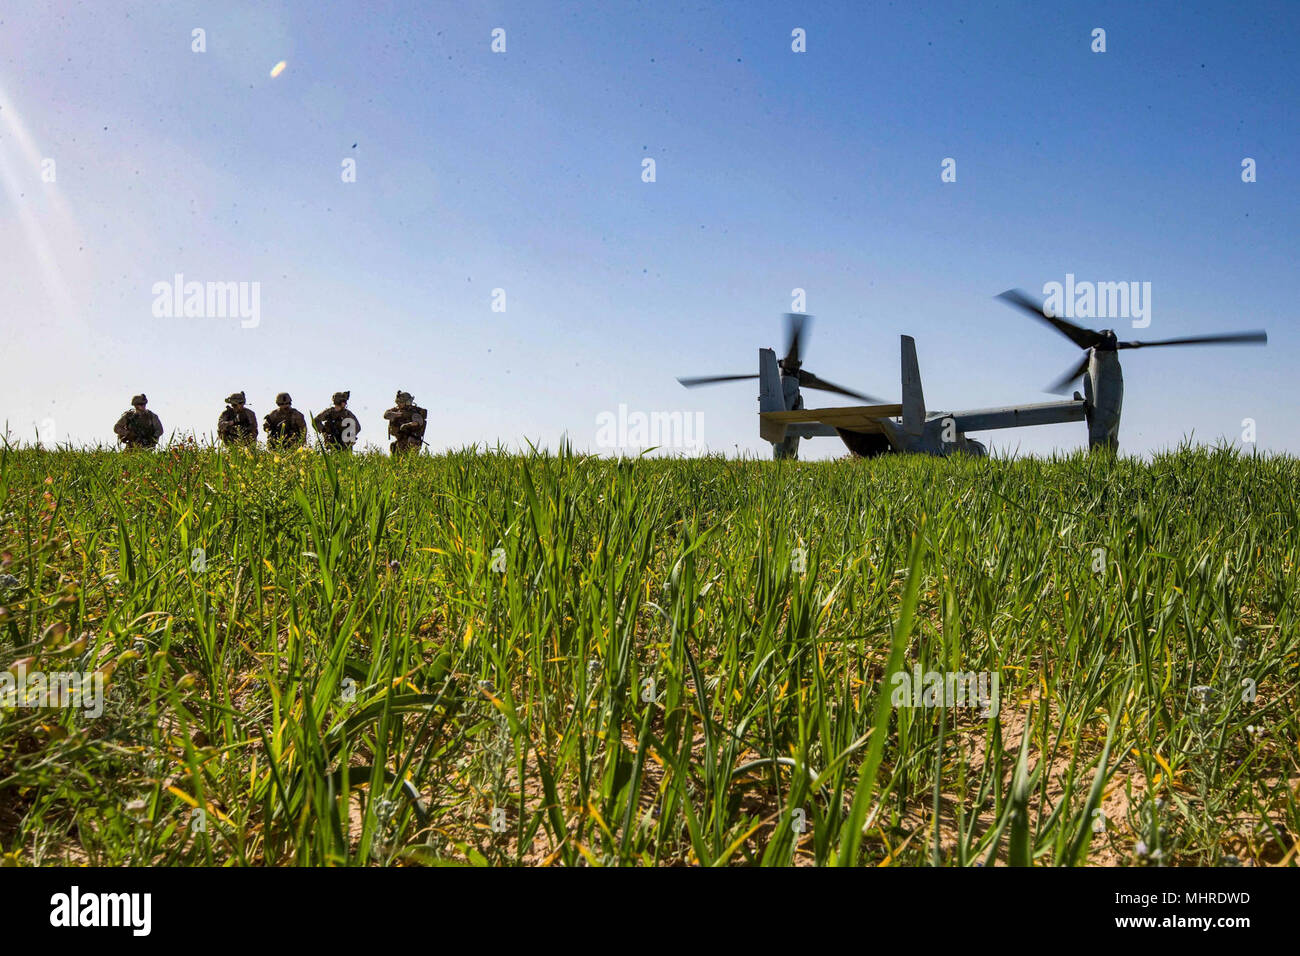 HAIFA, Israel (March 14, 2018) U.S. Marines assigned to the Tactical Recovery of Aircraft Personnel (TRAP) team, 26th Marine Expeditionary Unit (MEU), arrive in a landing zone of an MV-22B Osprey aircraft to conduct a simulated search mission, in Haifa, Israel, March 14, 2018. Juniper Cobra is a computer assisted exercise conducted through computer simulations focused on improving combined missile defense capabilities and overall interoperability between the U.S. European Command and Israel Defense Force. (U.S. Marine Corps Stock Photo